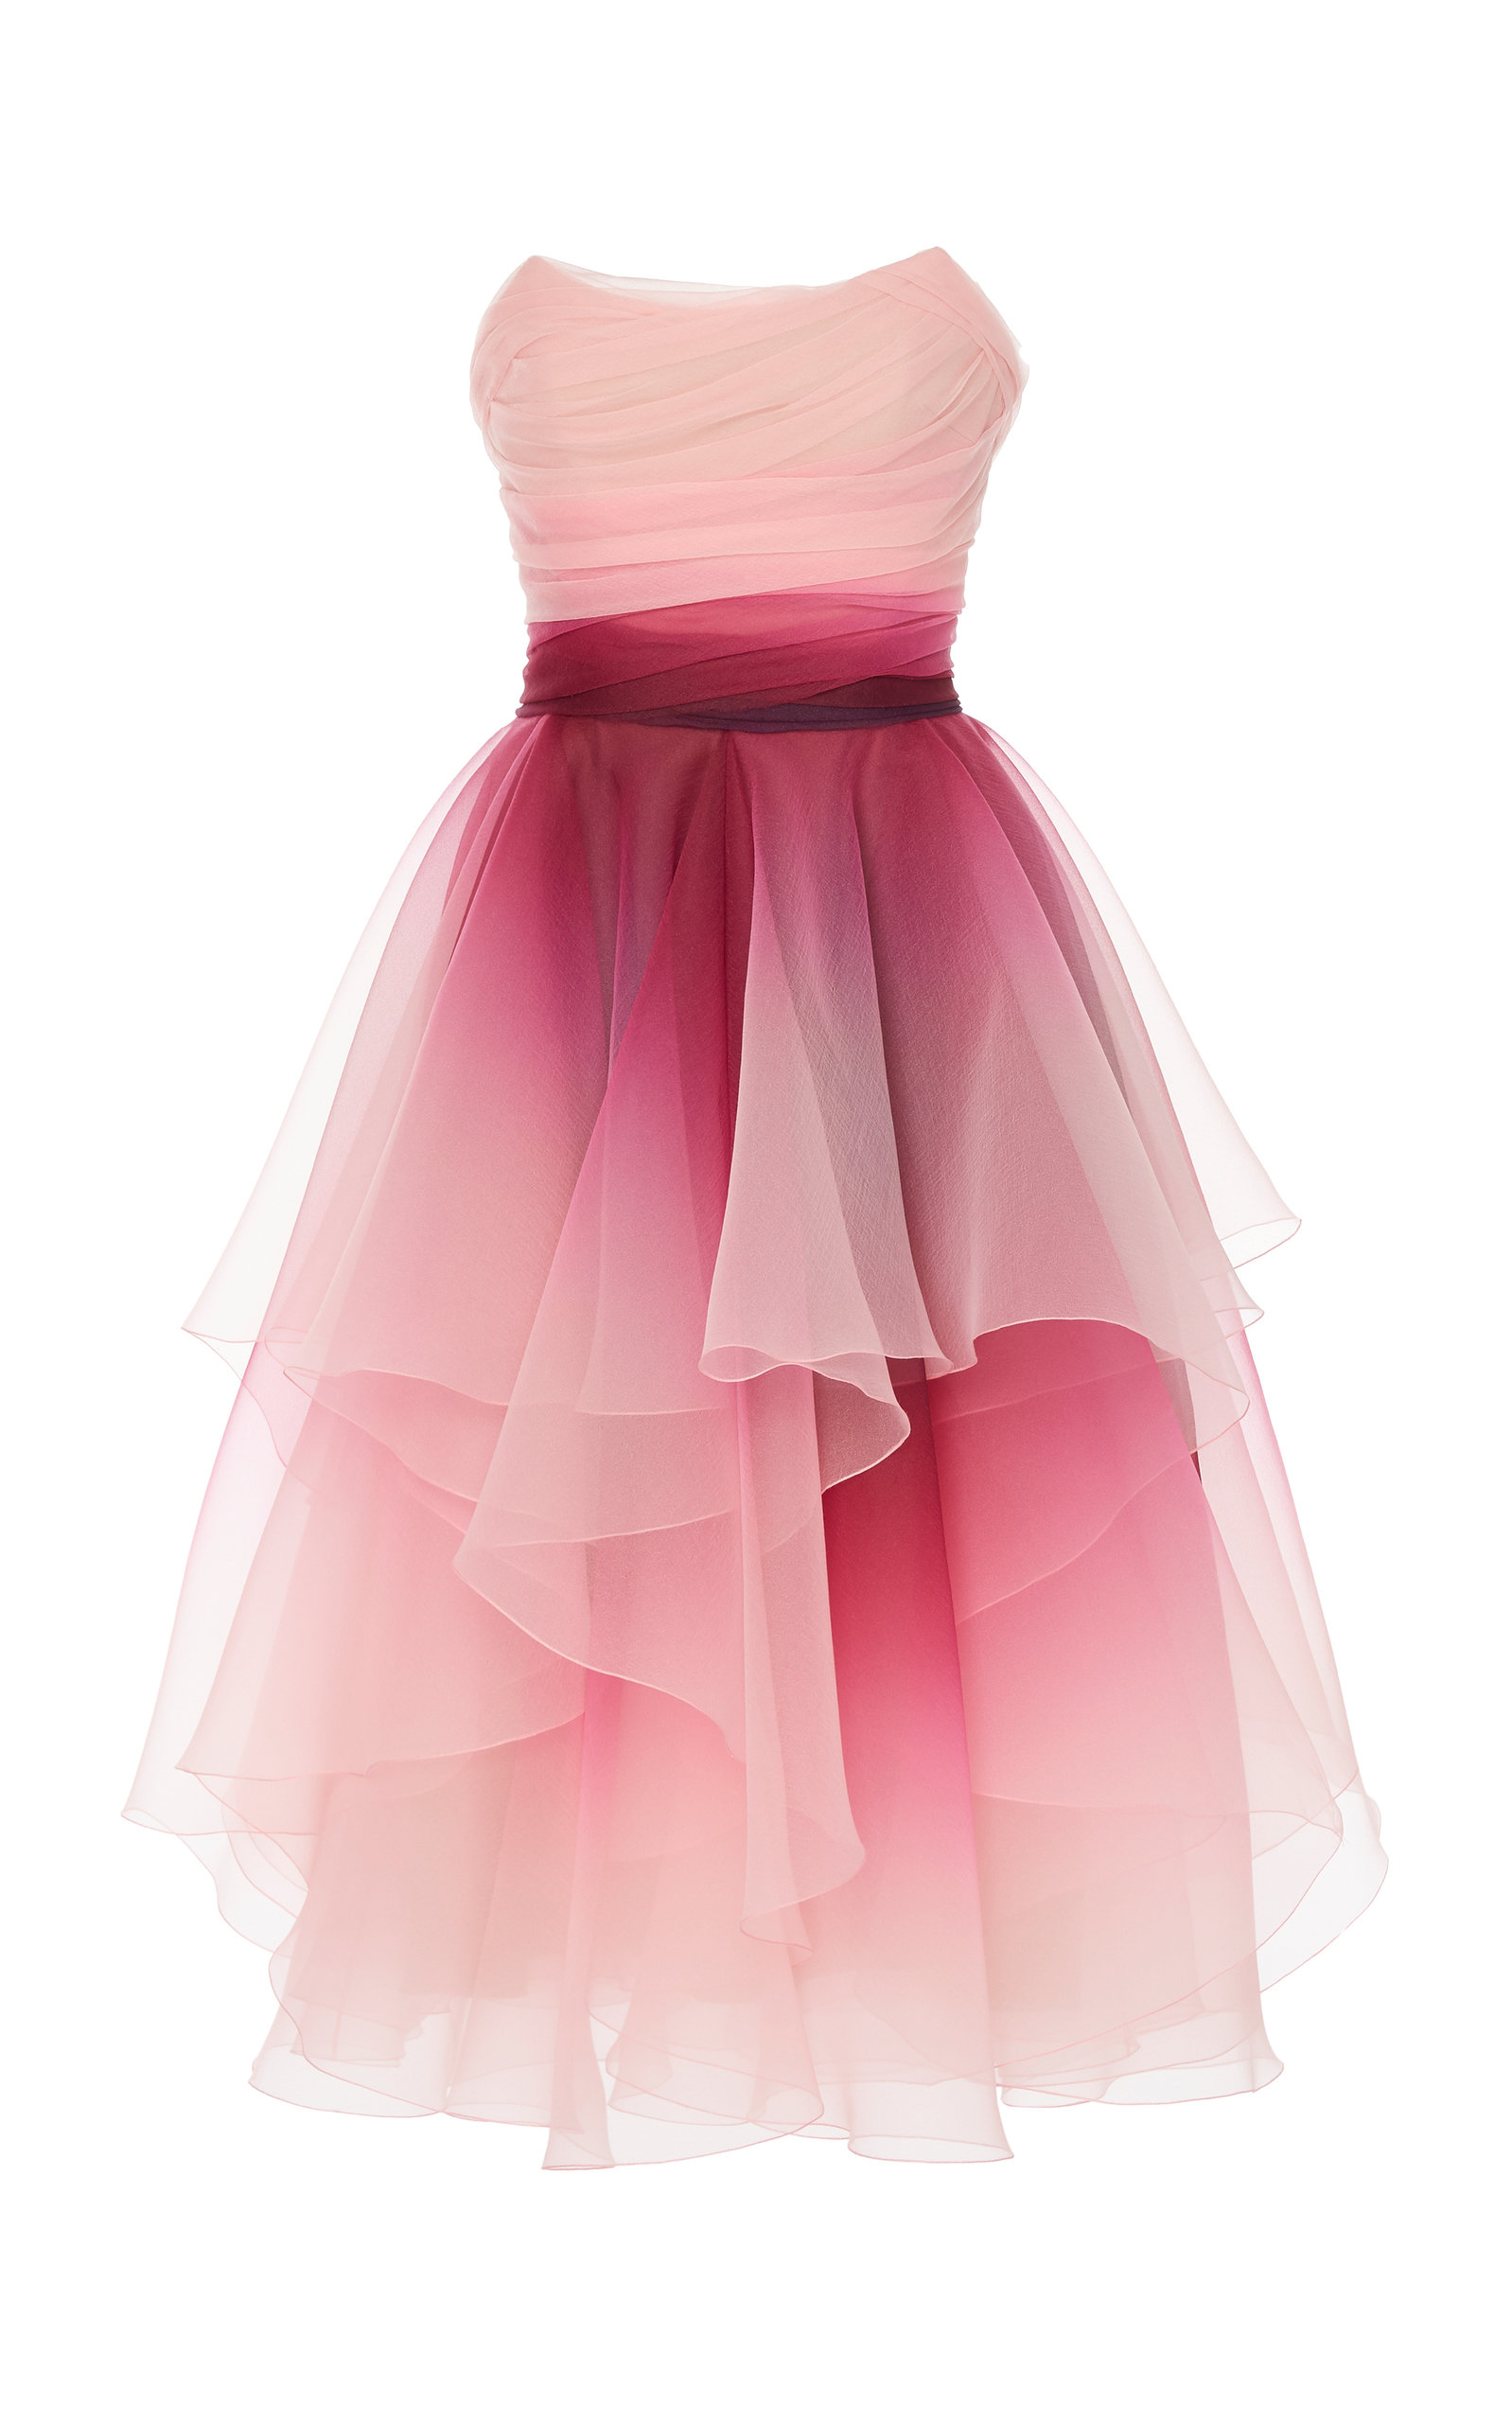 45a2afb32ac Marchesa Strapless Ombre Organza A-Line Cocktail Dress In Pink ...